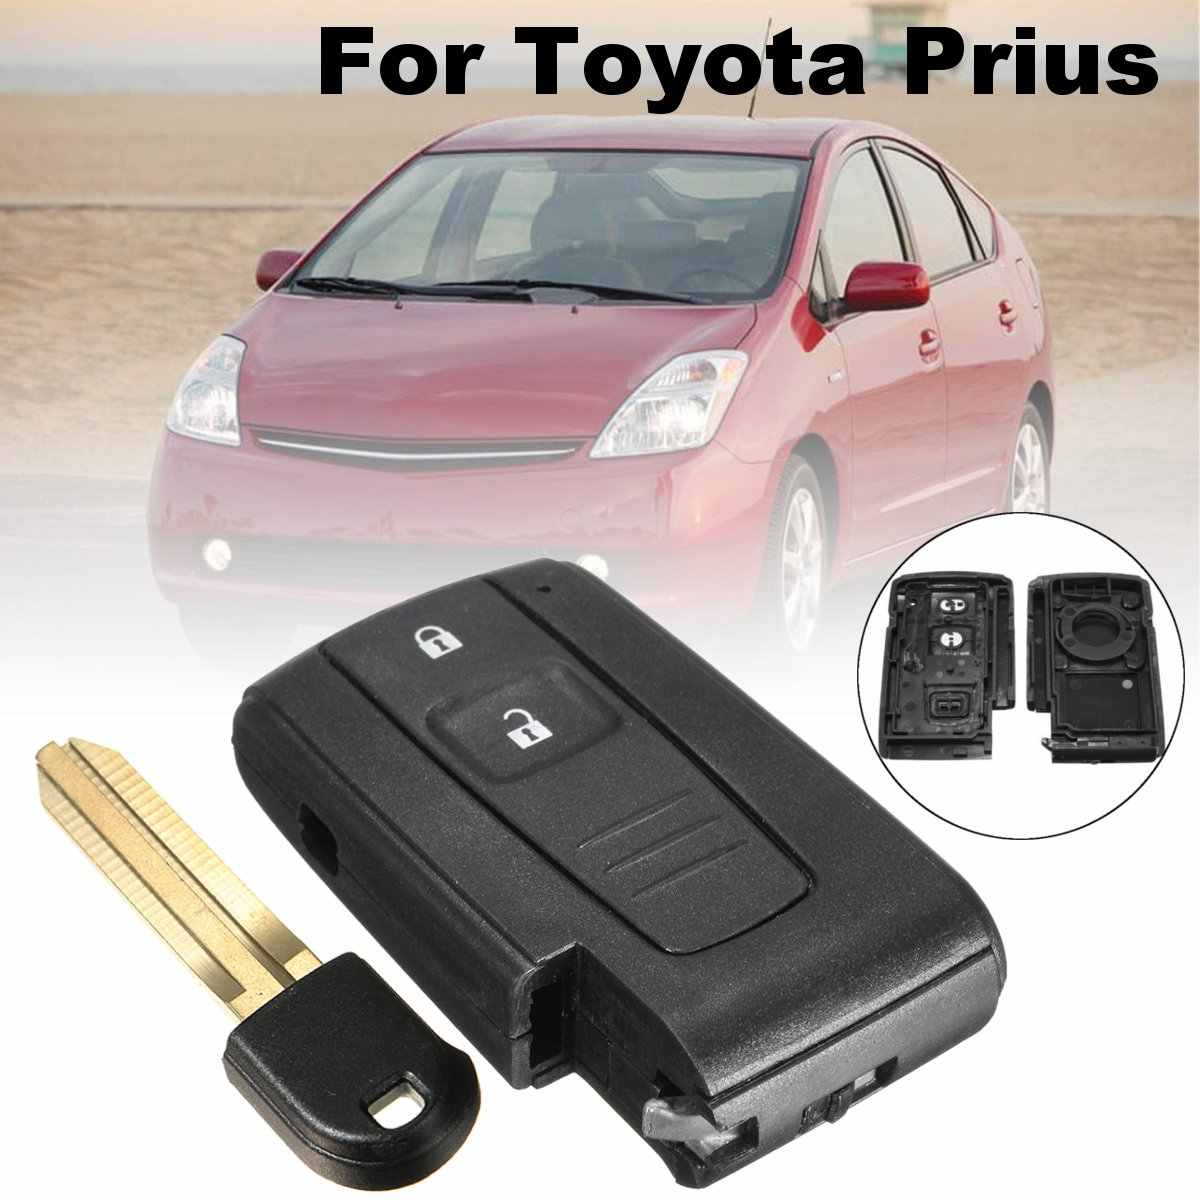 2 knop Auto Smart Keyless Remote Key Case Shell met Toy43 Blade Voor Toyota Prius 2004 2005 2006 2007 2008 2009 # MOZB31EG